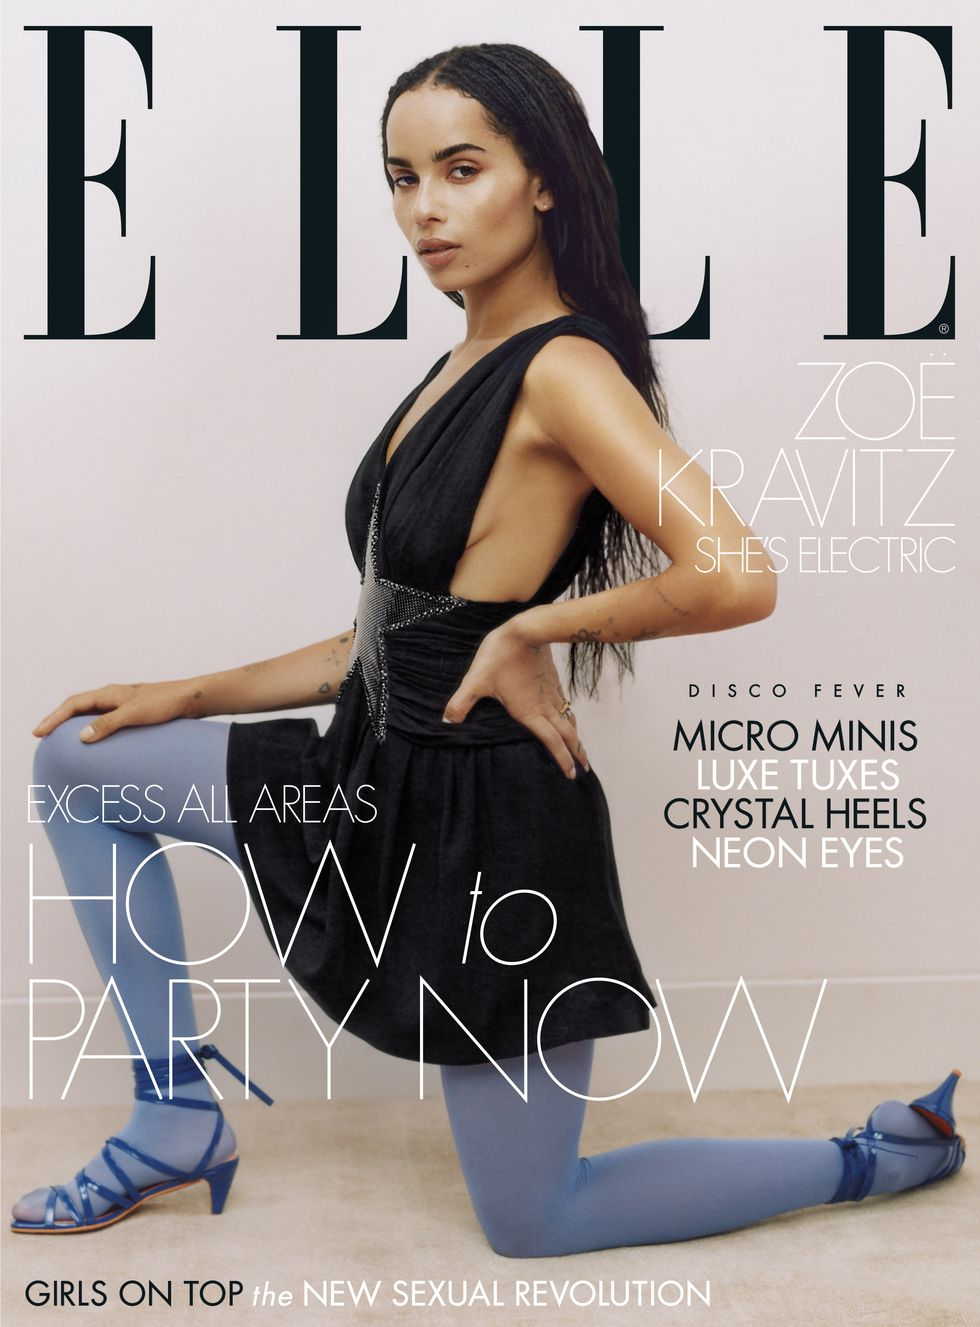 """<a href=""""https://www.elle.com/uk/life-and-culture/a24780442/zoe-kravitz-is-a-rebel-with-a-cause/"""" target=""""_Blank"""">ELLE UK</a>"""